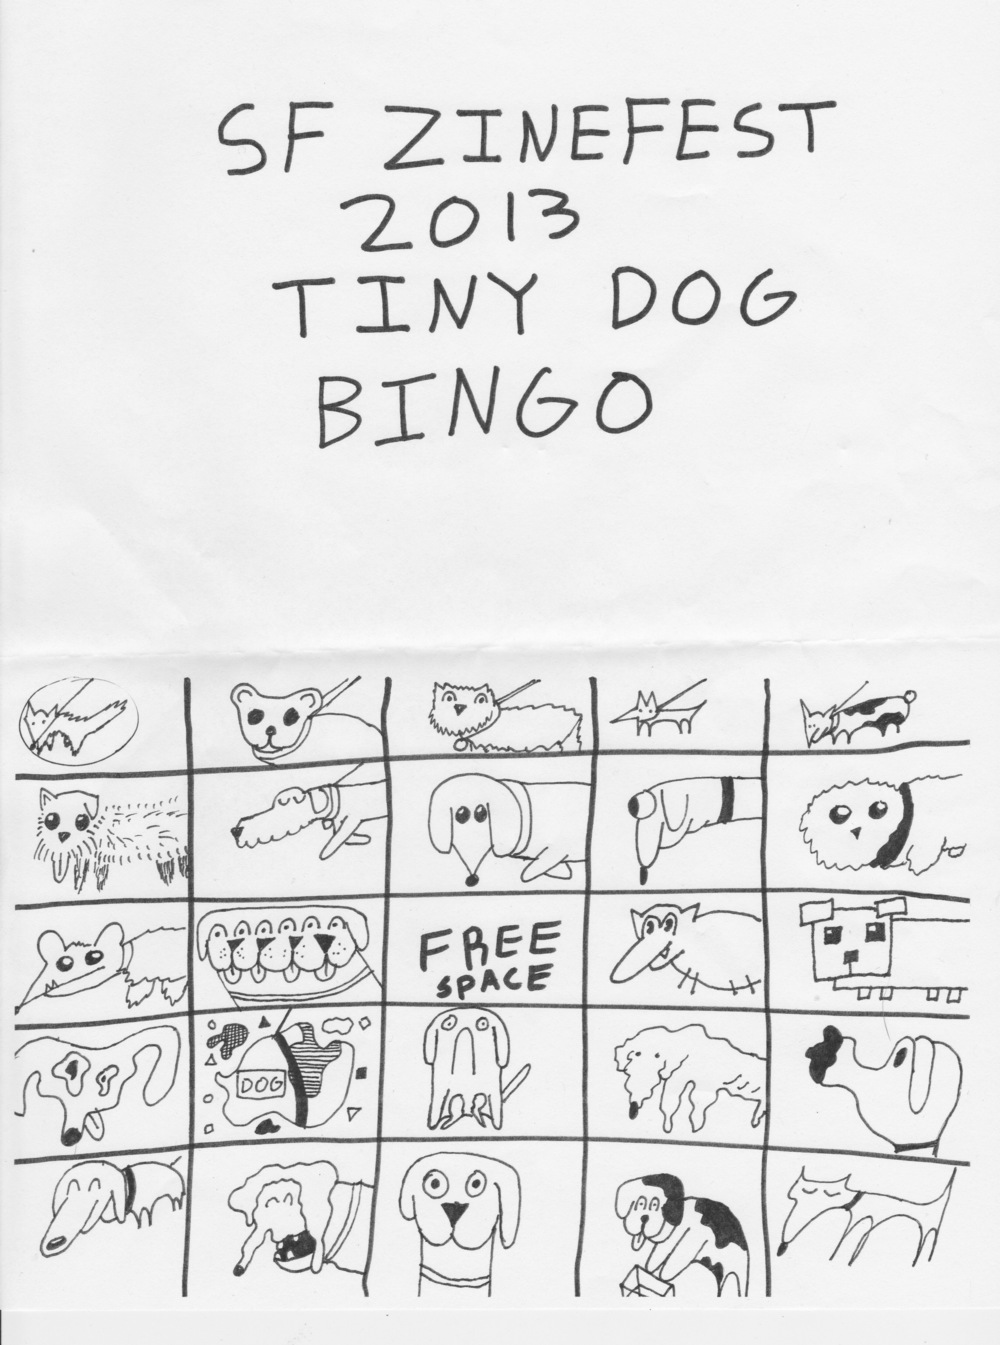 A special thanks to Chigbarg (of the Double Elvis Ghost Library) for creating this Bingo masterpiece. And a big shout out to our featured artists Justin Hall, Roman Muradov, Sophia Foster Dimino, our guest readers, and our wonderful volunteers.